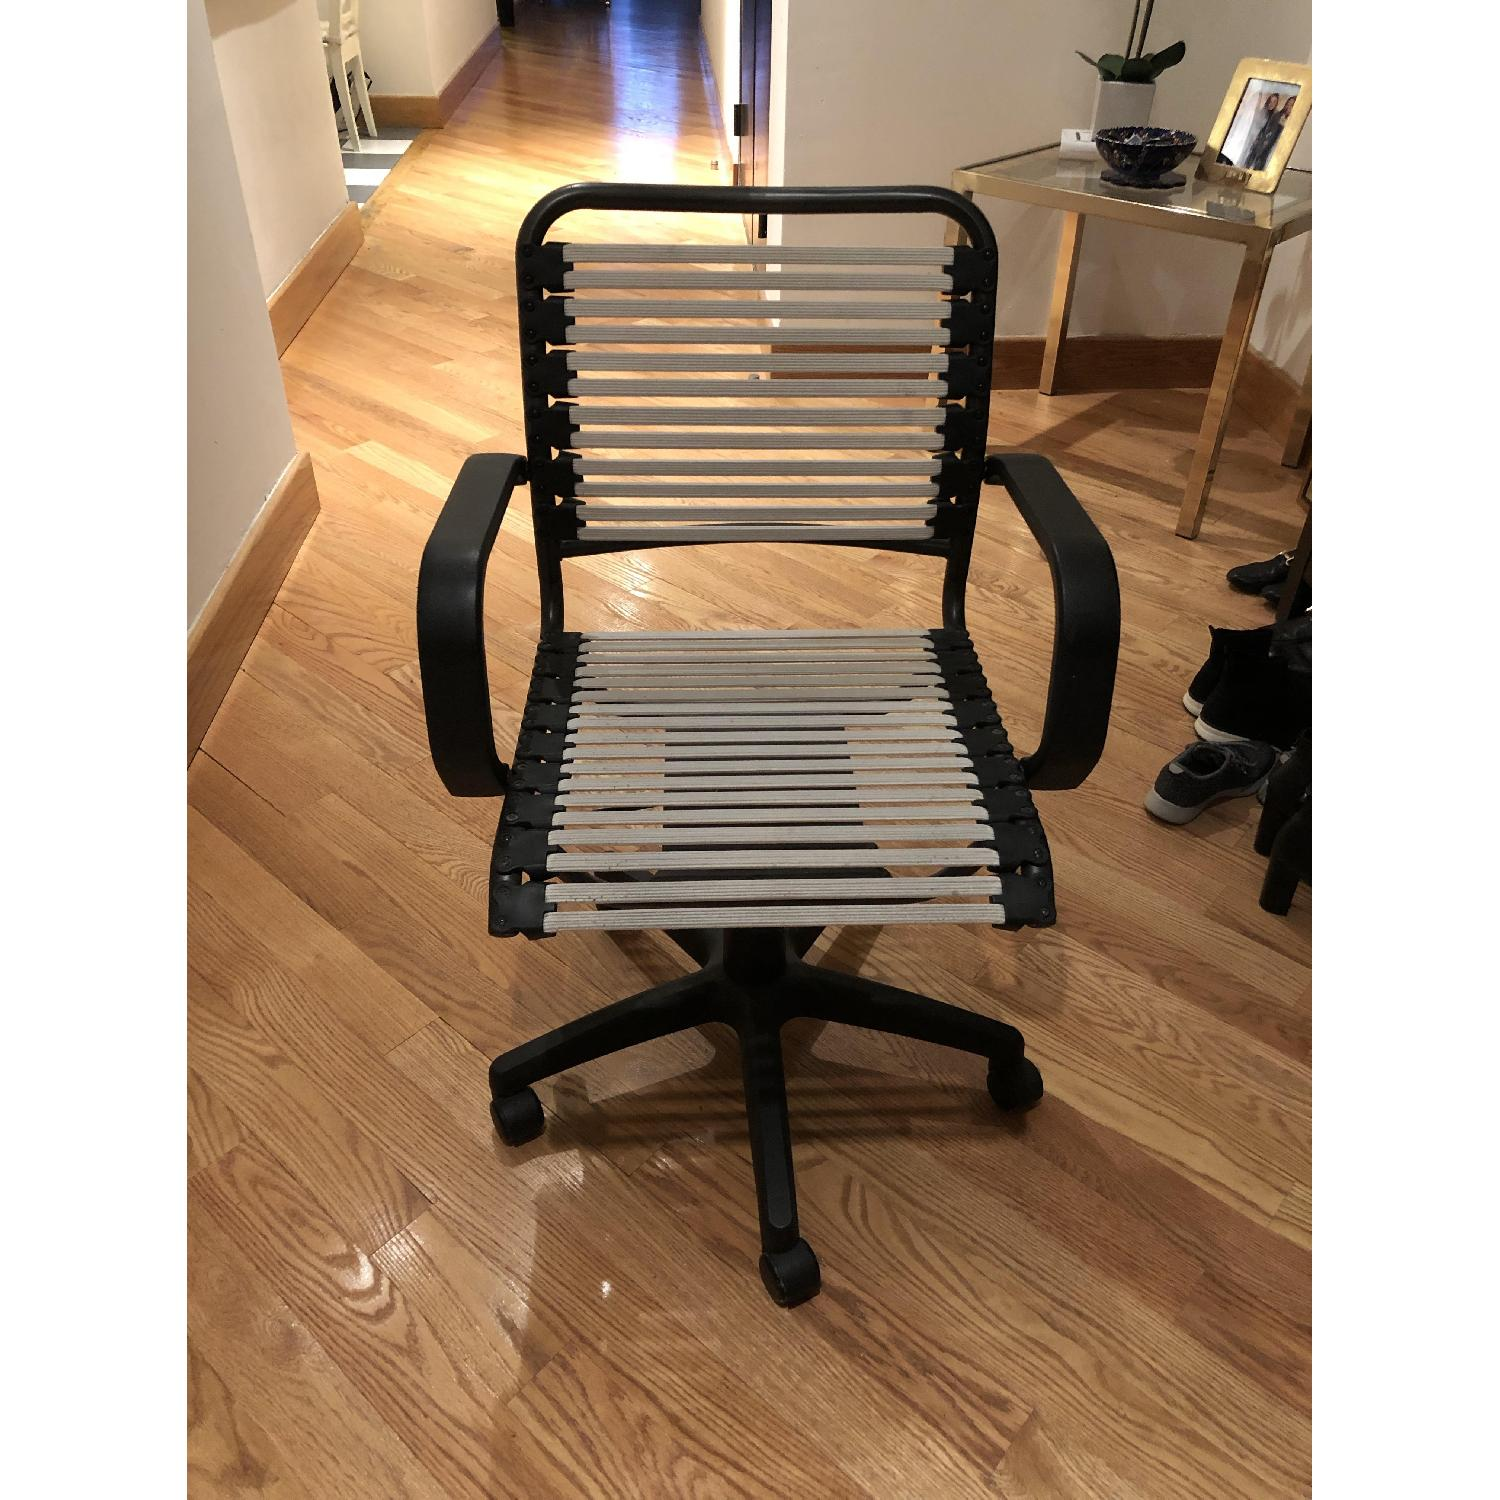 Container Store White Flat Bungee Office Chair w/ Arms-2